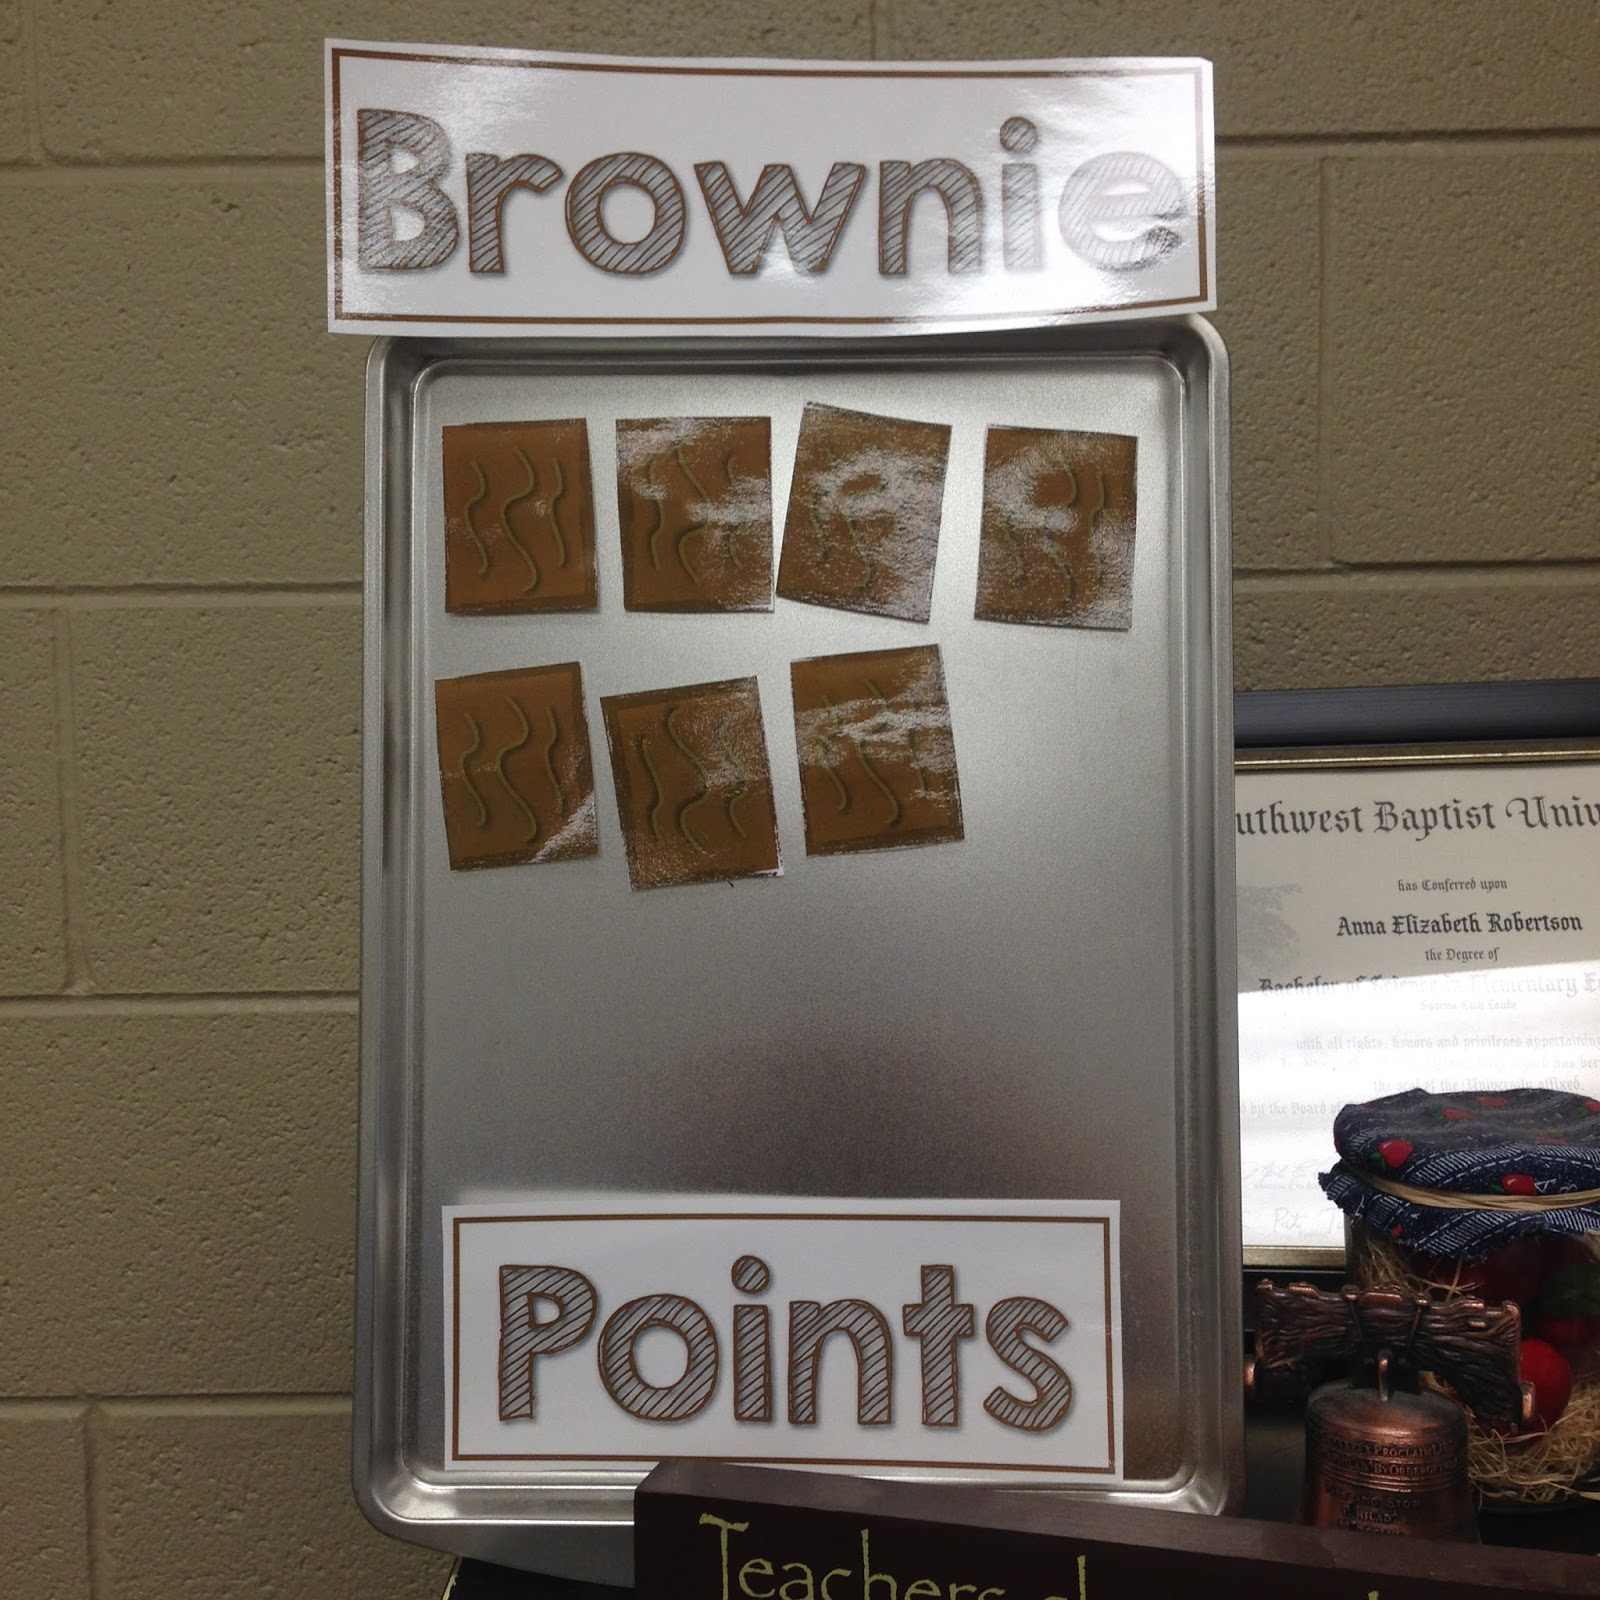 Brownie Points A Cheap Behavior Management Strategy